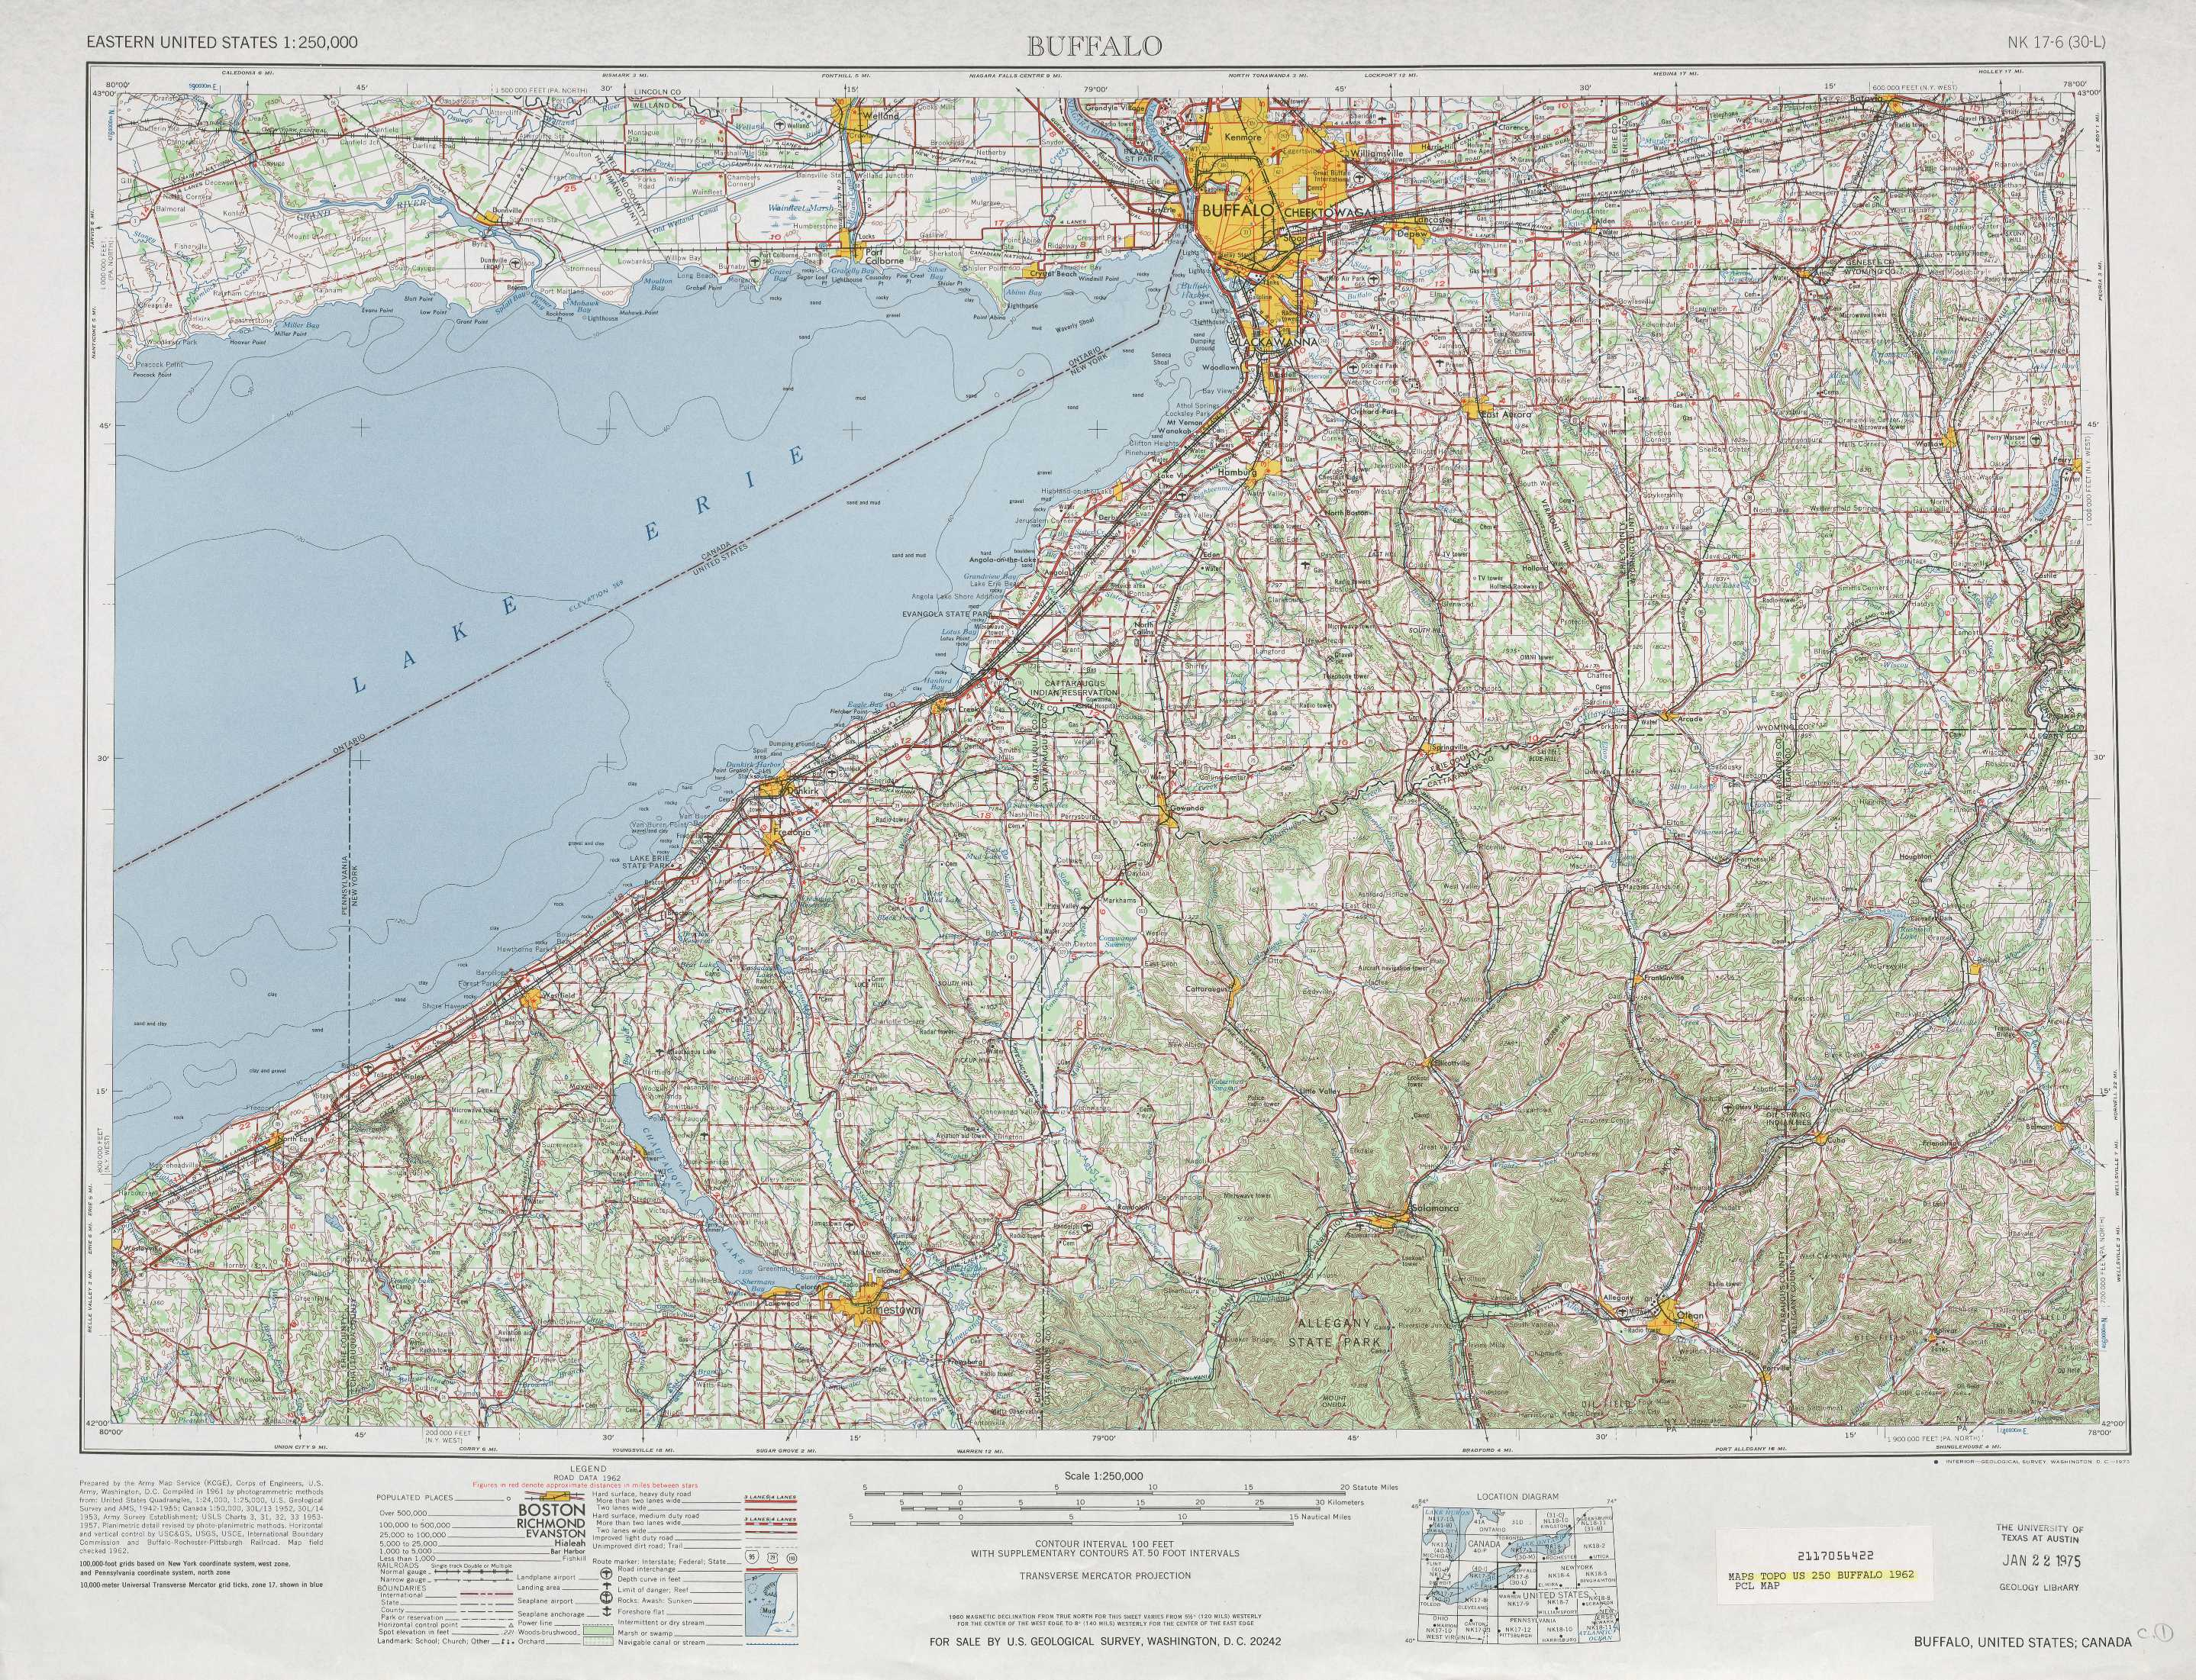 Buffalo Topographic Maps NY PA USGS Topo Quad A At - Nyc map topographic